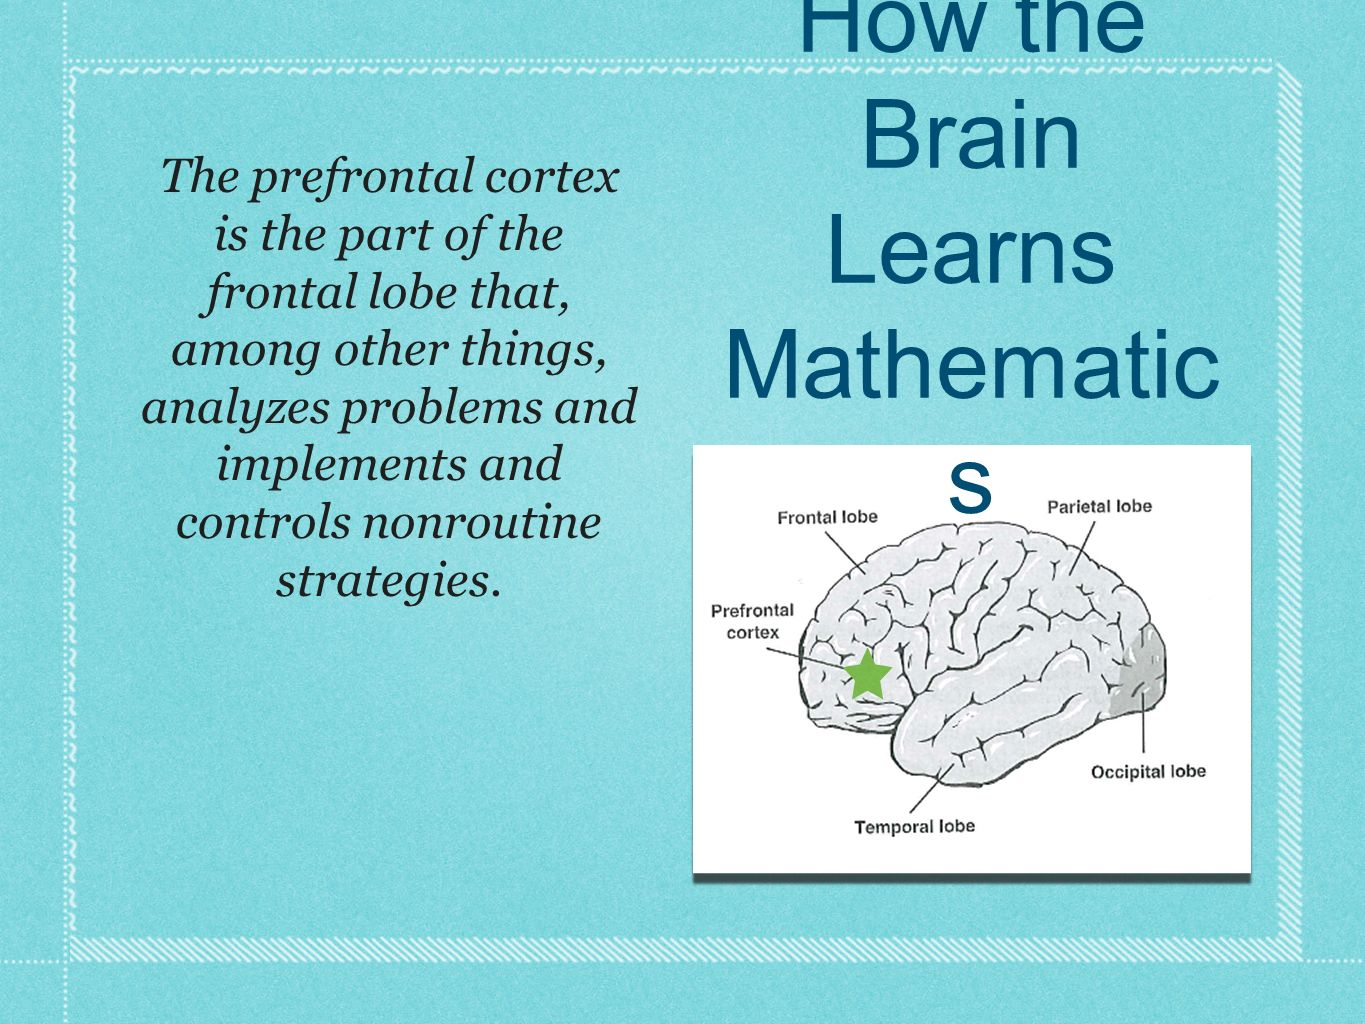 The prefrontal cortex is the part of the frontal lobe that, among other things, analyzes problems and implements and controls nonroutine strategies. H